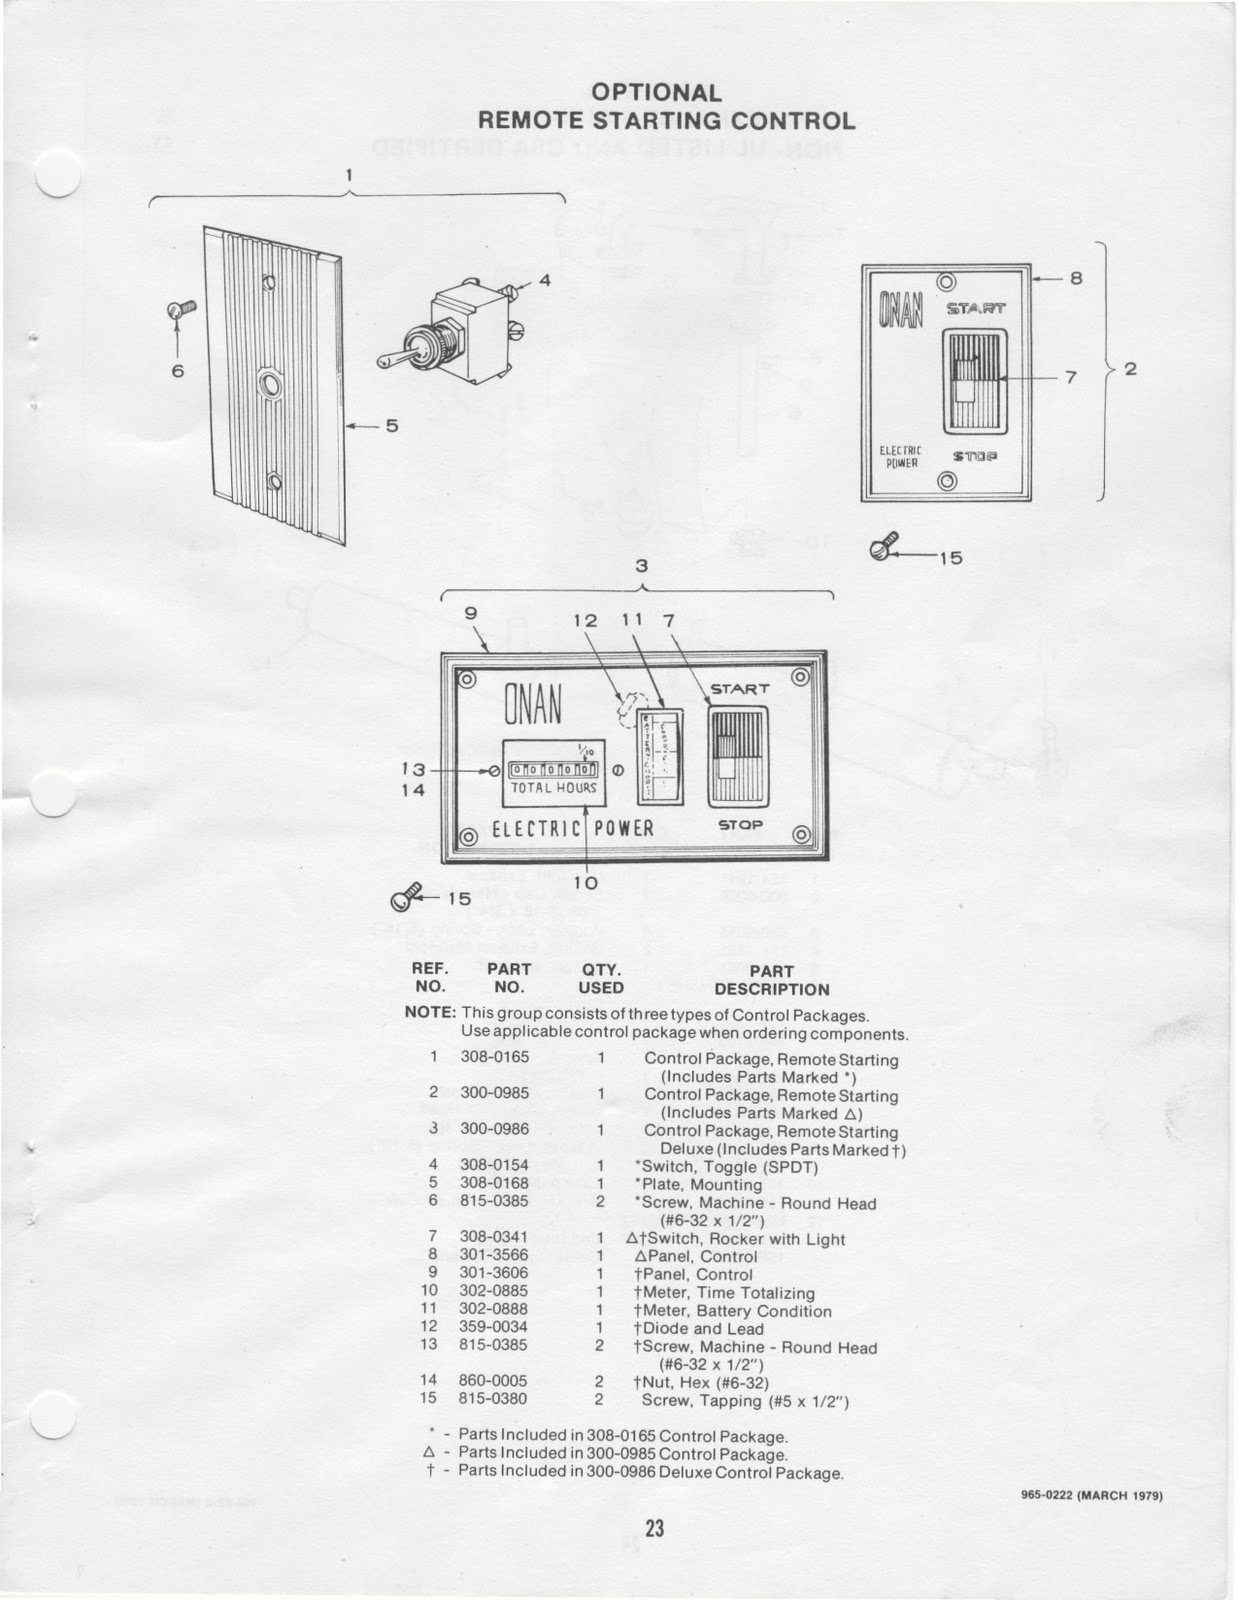 Thetford C200 Toilet Wiring Diagram Honeywell Nfs 320 Aqua Magic Rv Imageresizertool Com